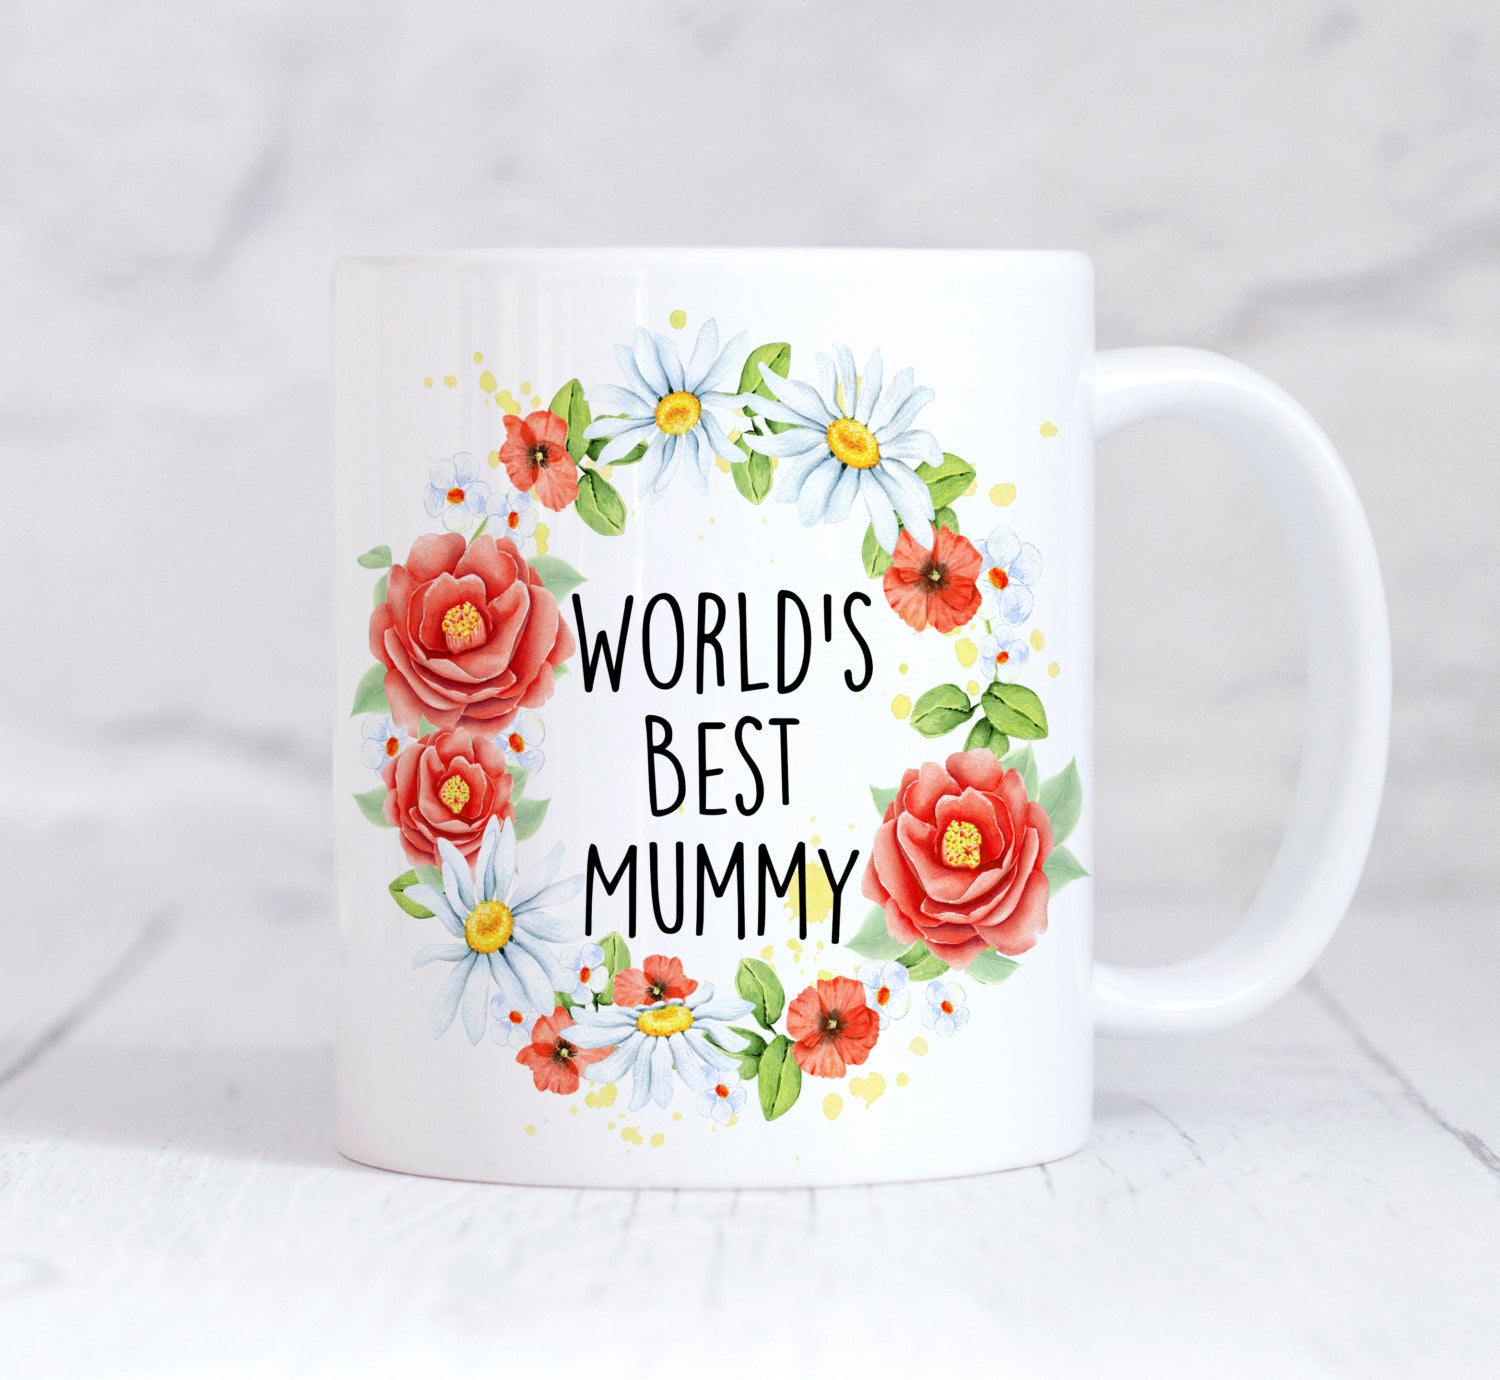 Worlds Best Mummy Mug, Mom Mum Mug, Mum Gift, Mothers Day, Coffee Mug, Tea Mug, For Her, Coffee Lover, Funny Mug, Christmas Gift, Adult